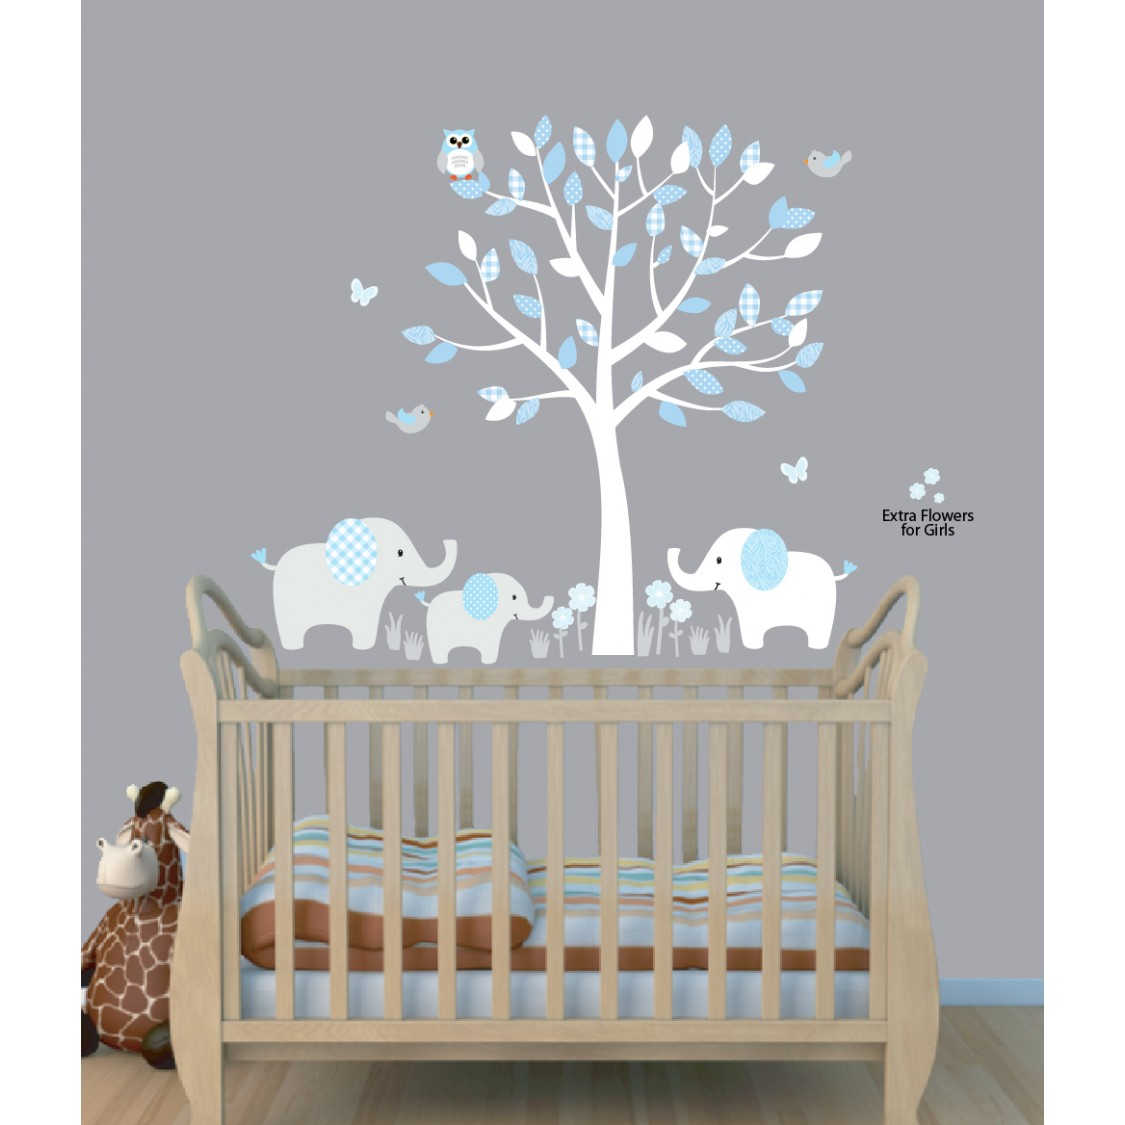 Use Elephant Wall Decals And Elephant Stickers To Create An - Nursery wall decals baby boy